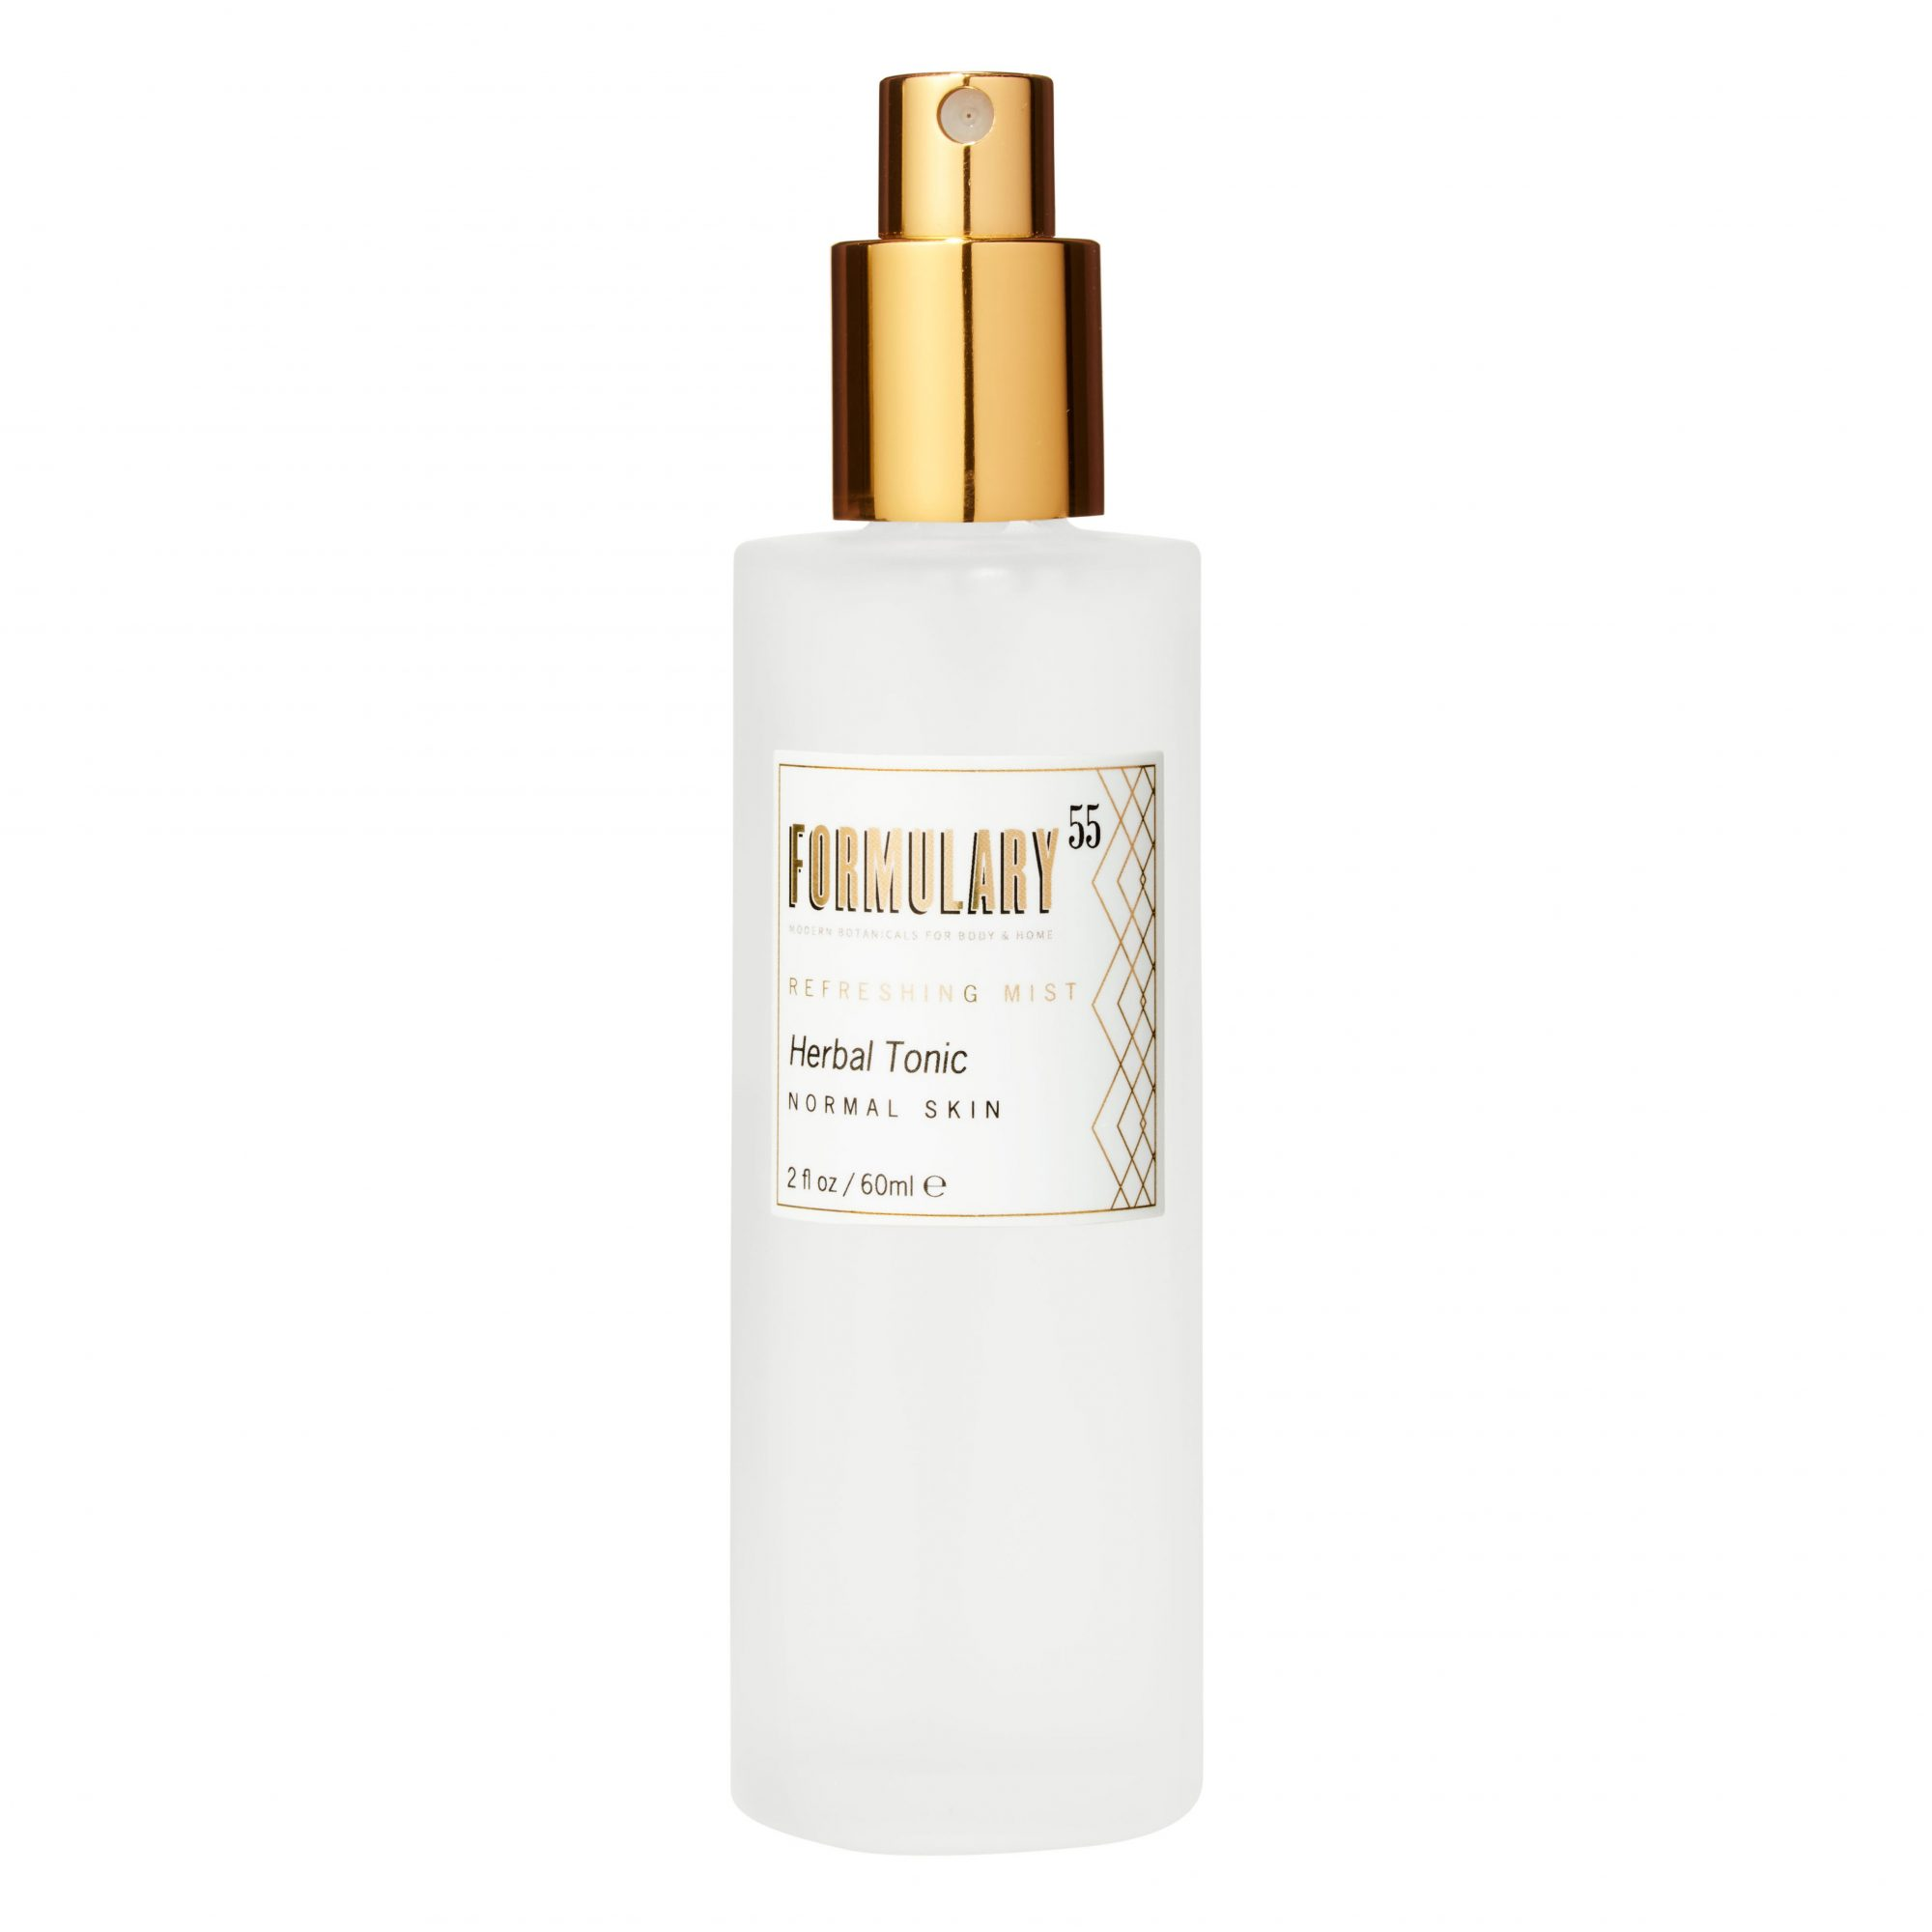 face and body mist